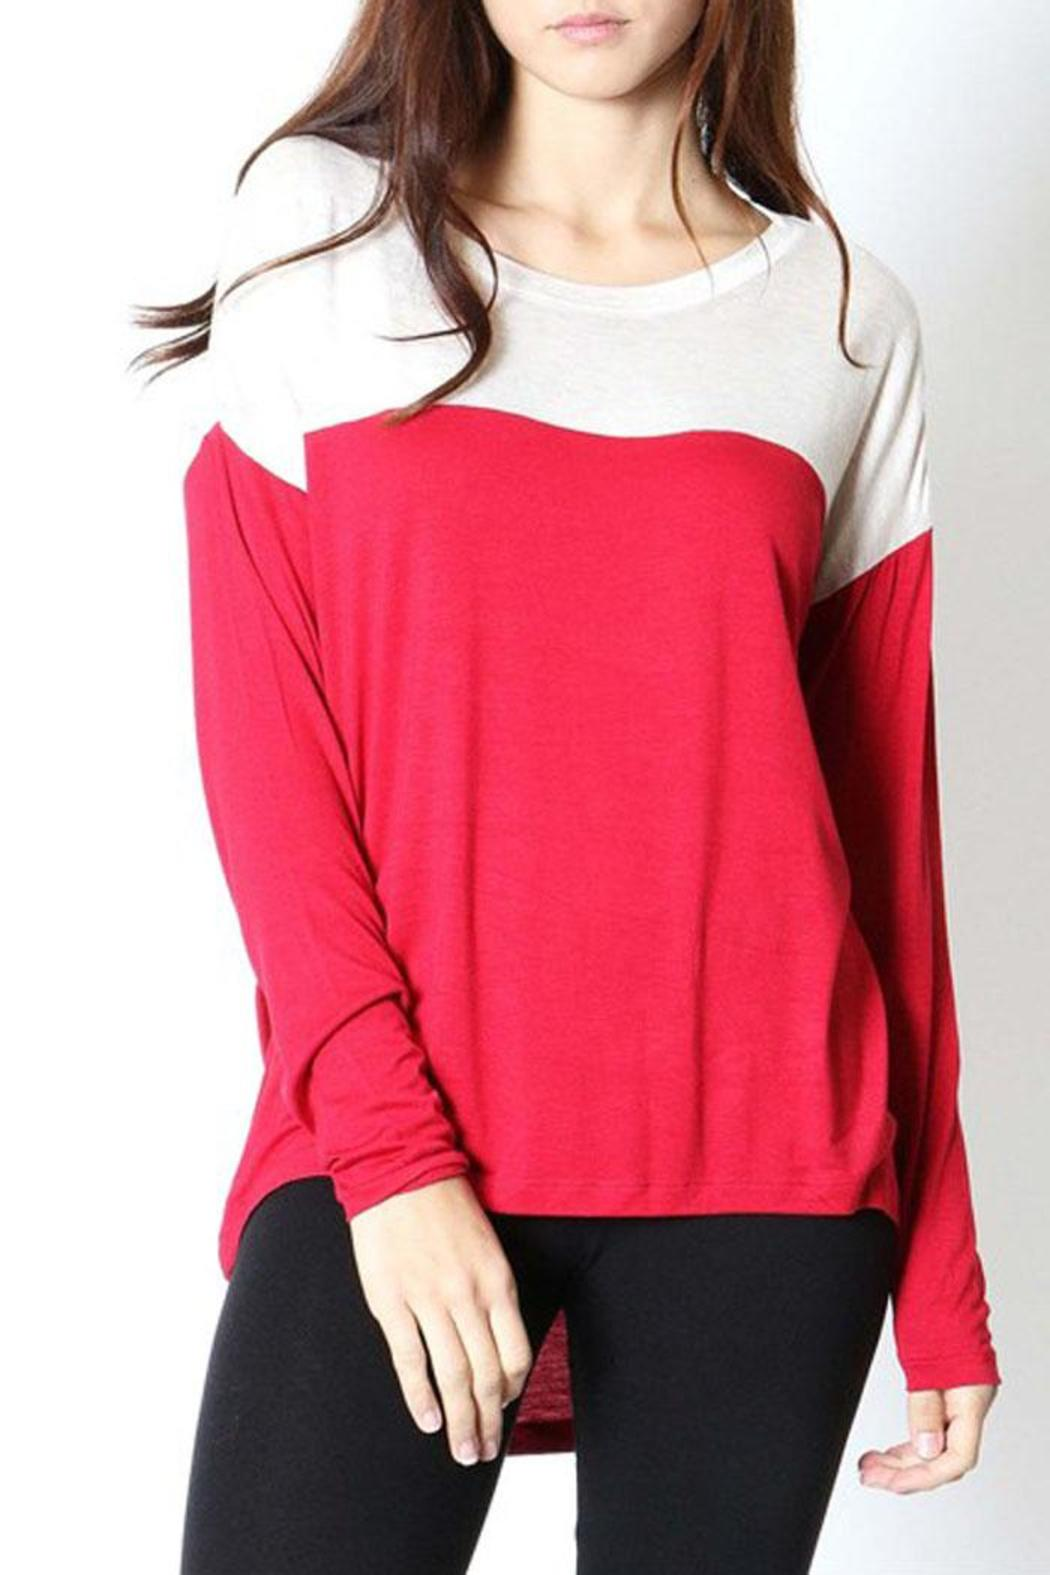 Zenana Outfitters Colorblock Top from Vermont by Avenue A u2014 Shoptiques